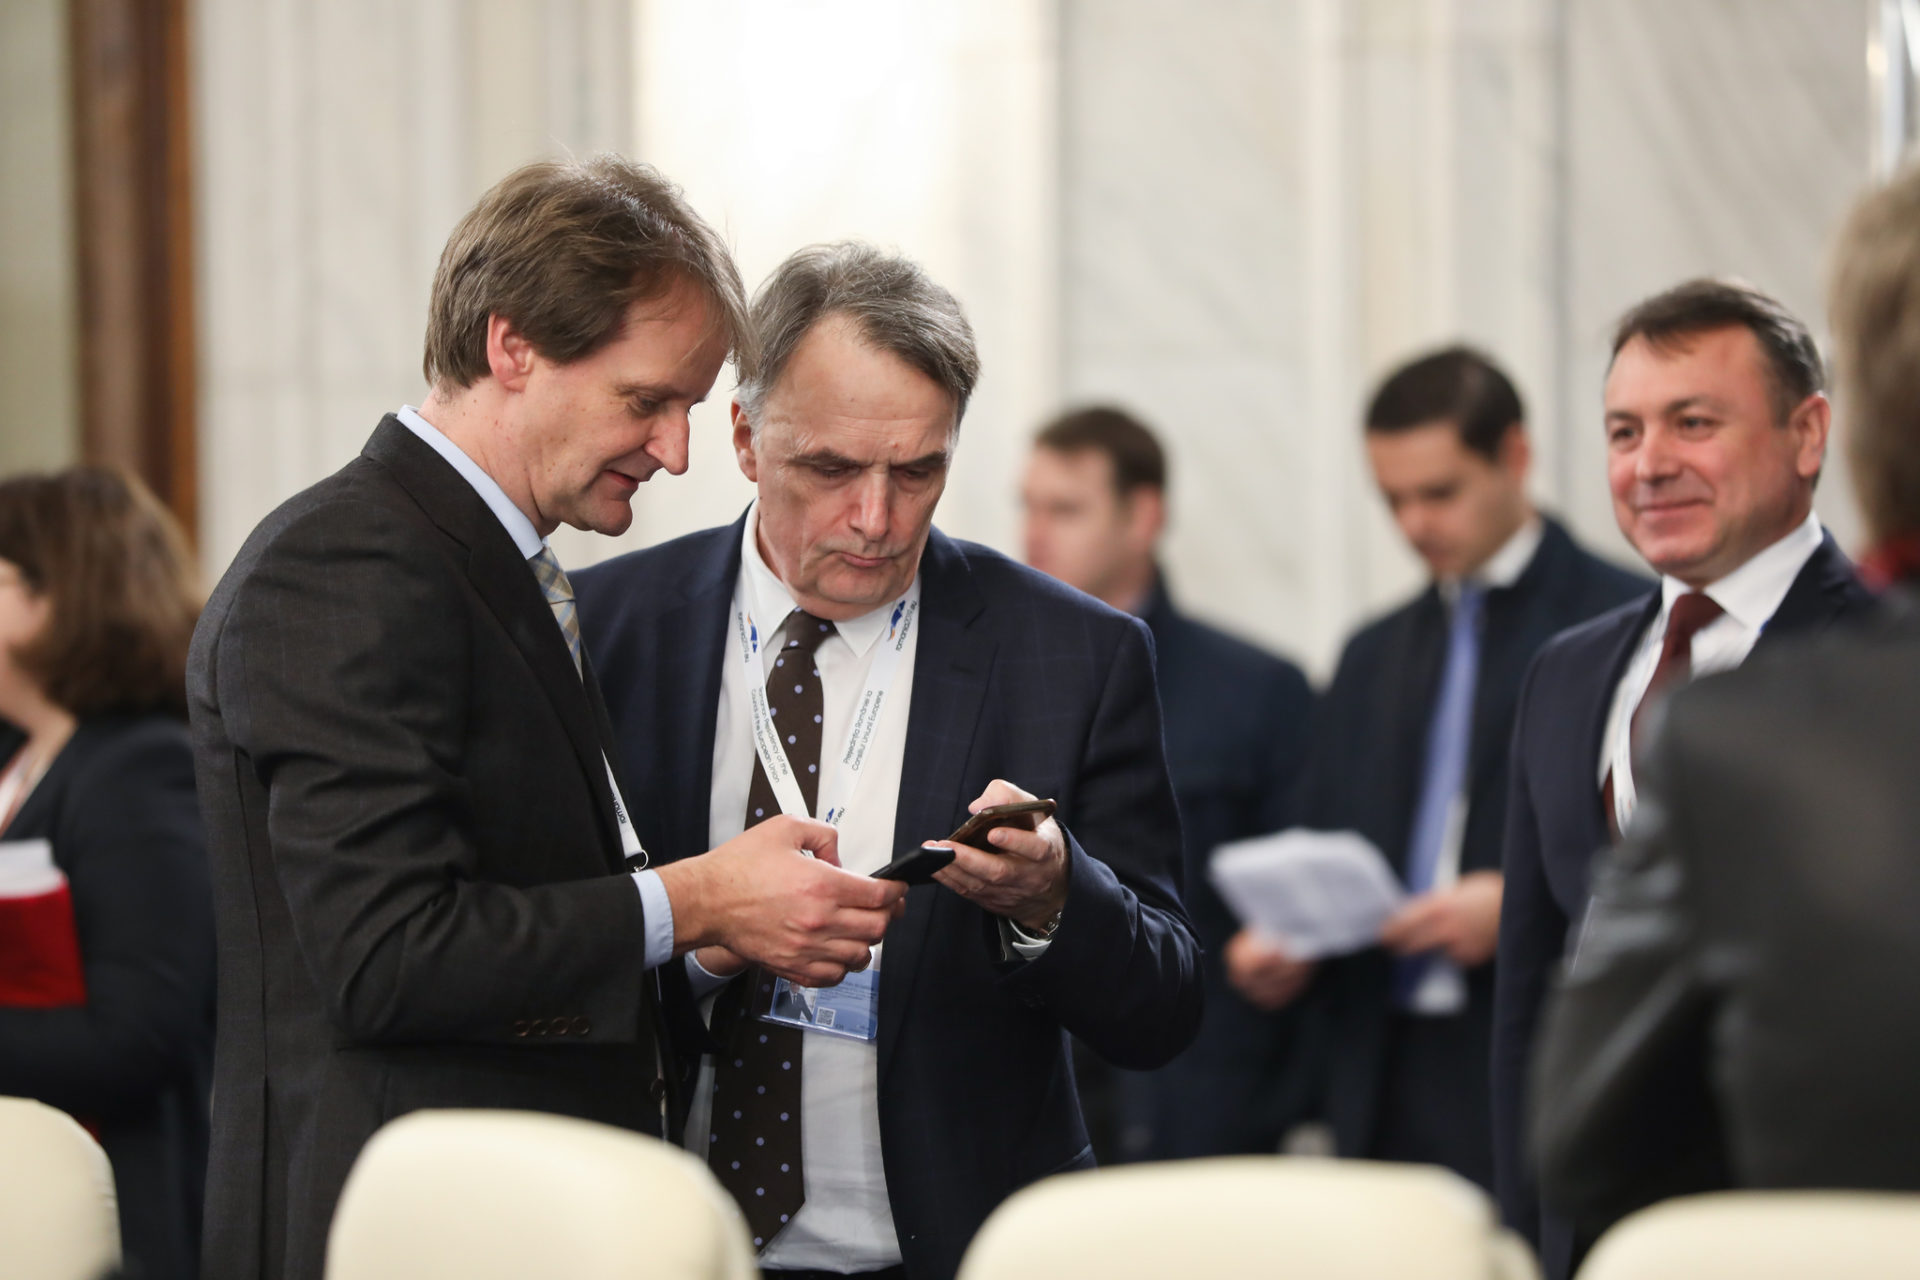 Informal meeting of Home Affairs ministers from the EU member states: arrivals and doorsteps